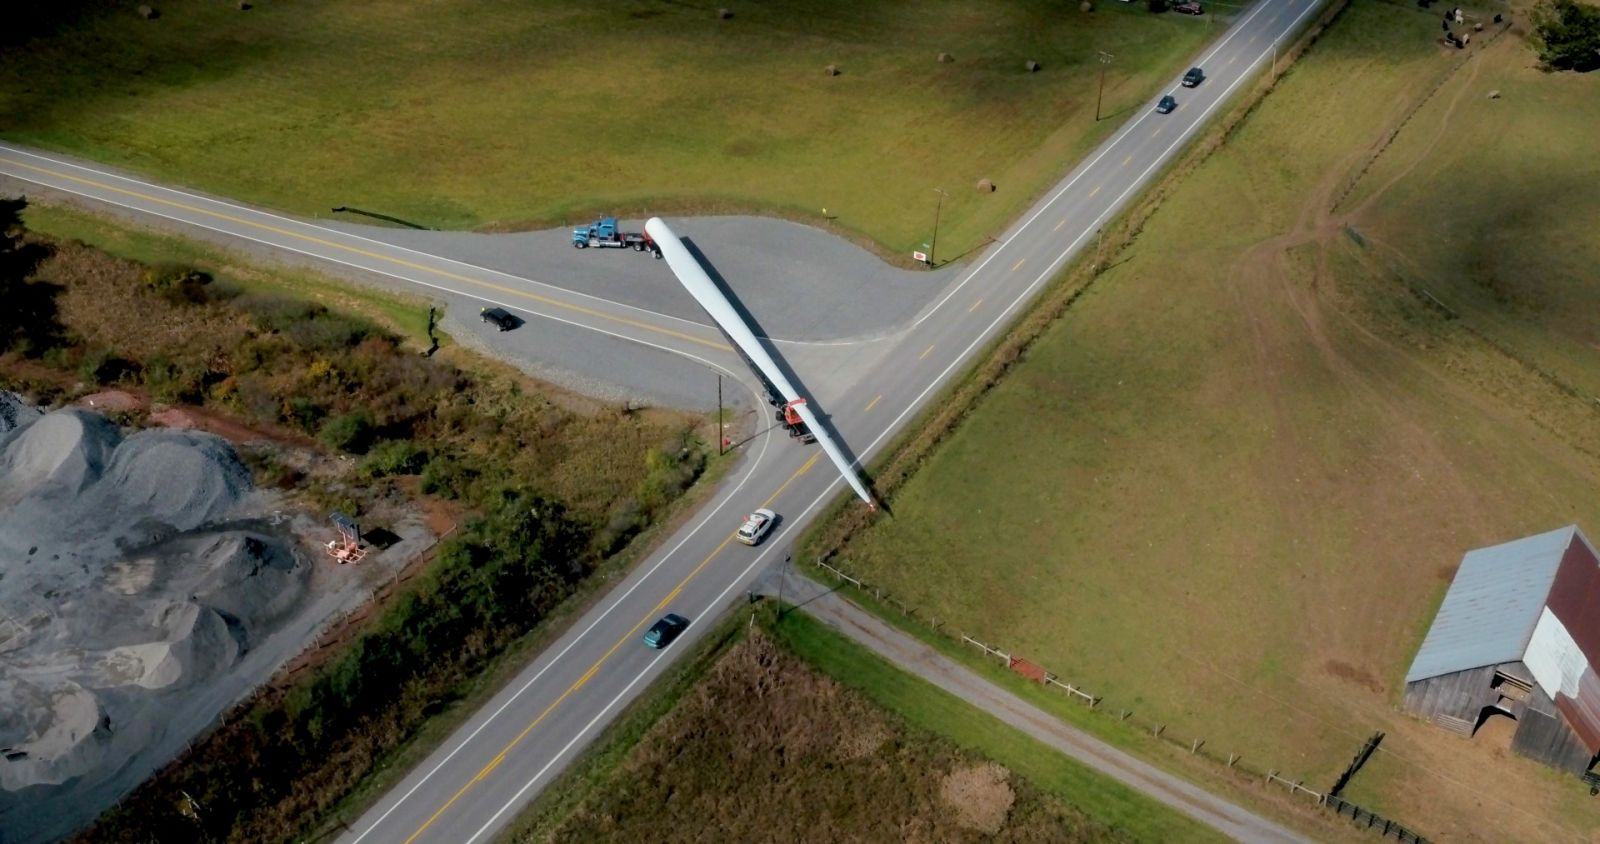 Greenville-based Logisticus manages the transport of turbine blades, some reaching almost 165 long, after the blades are retired from service. (Photo/Provided)